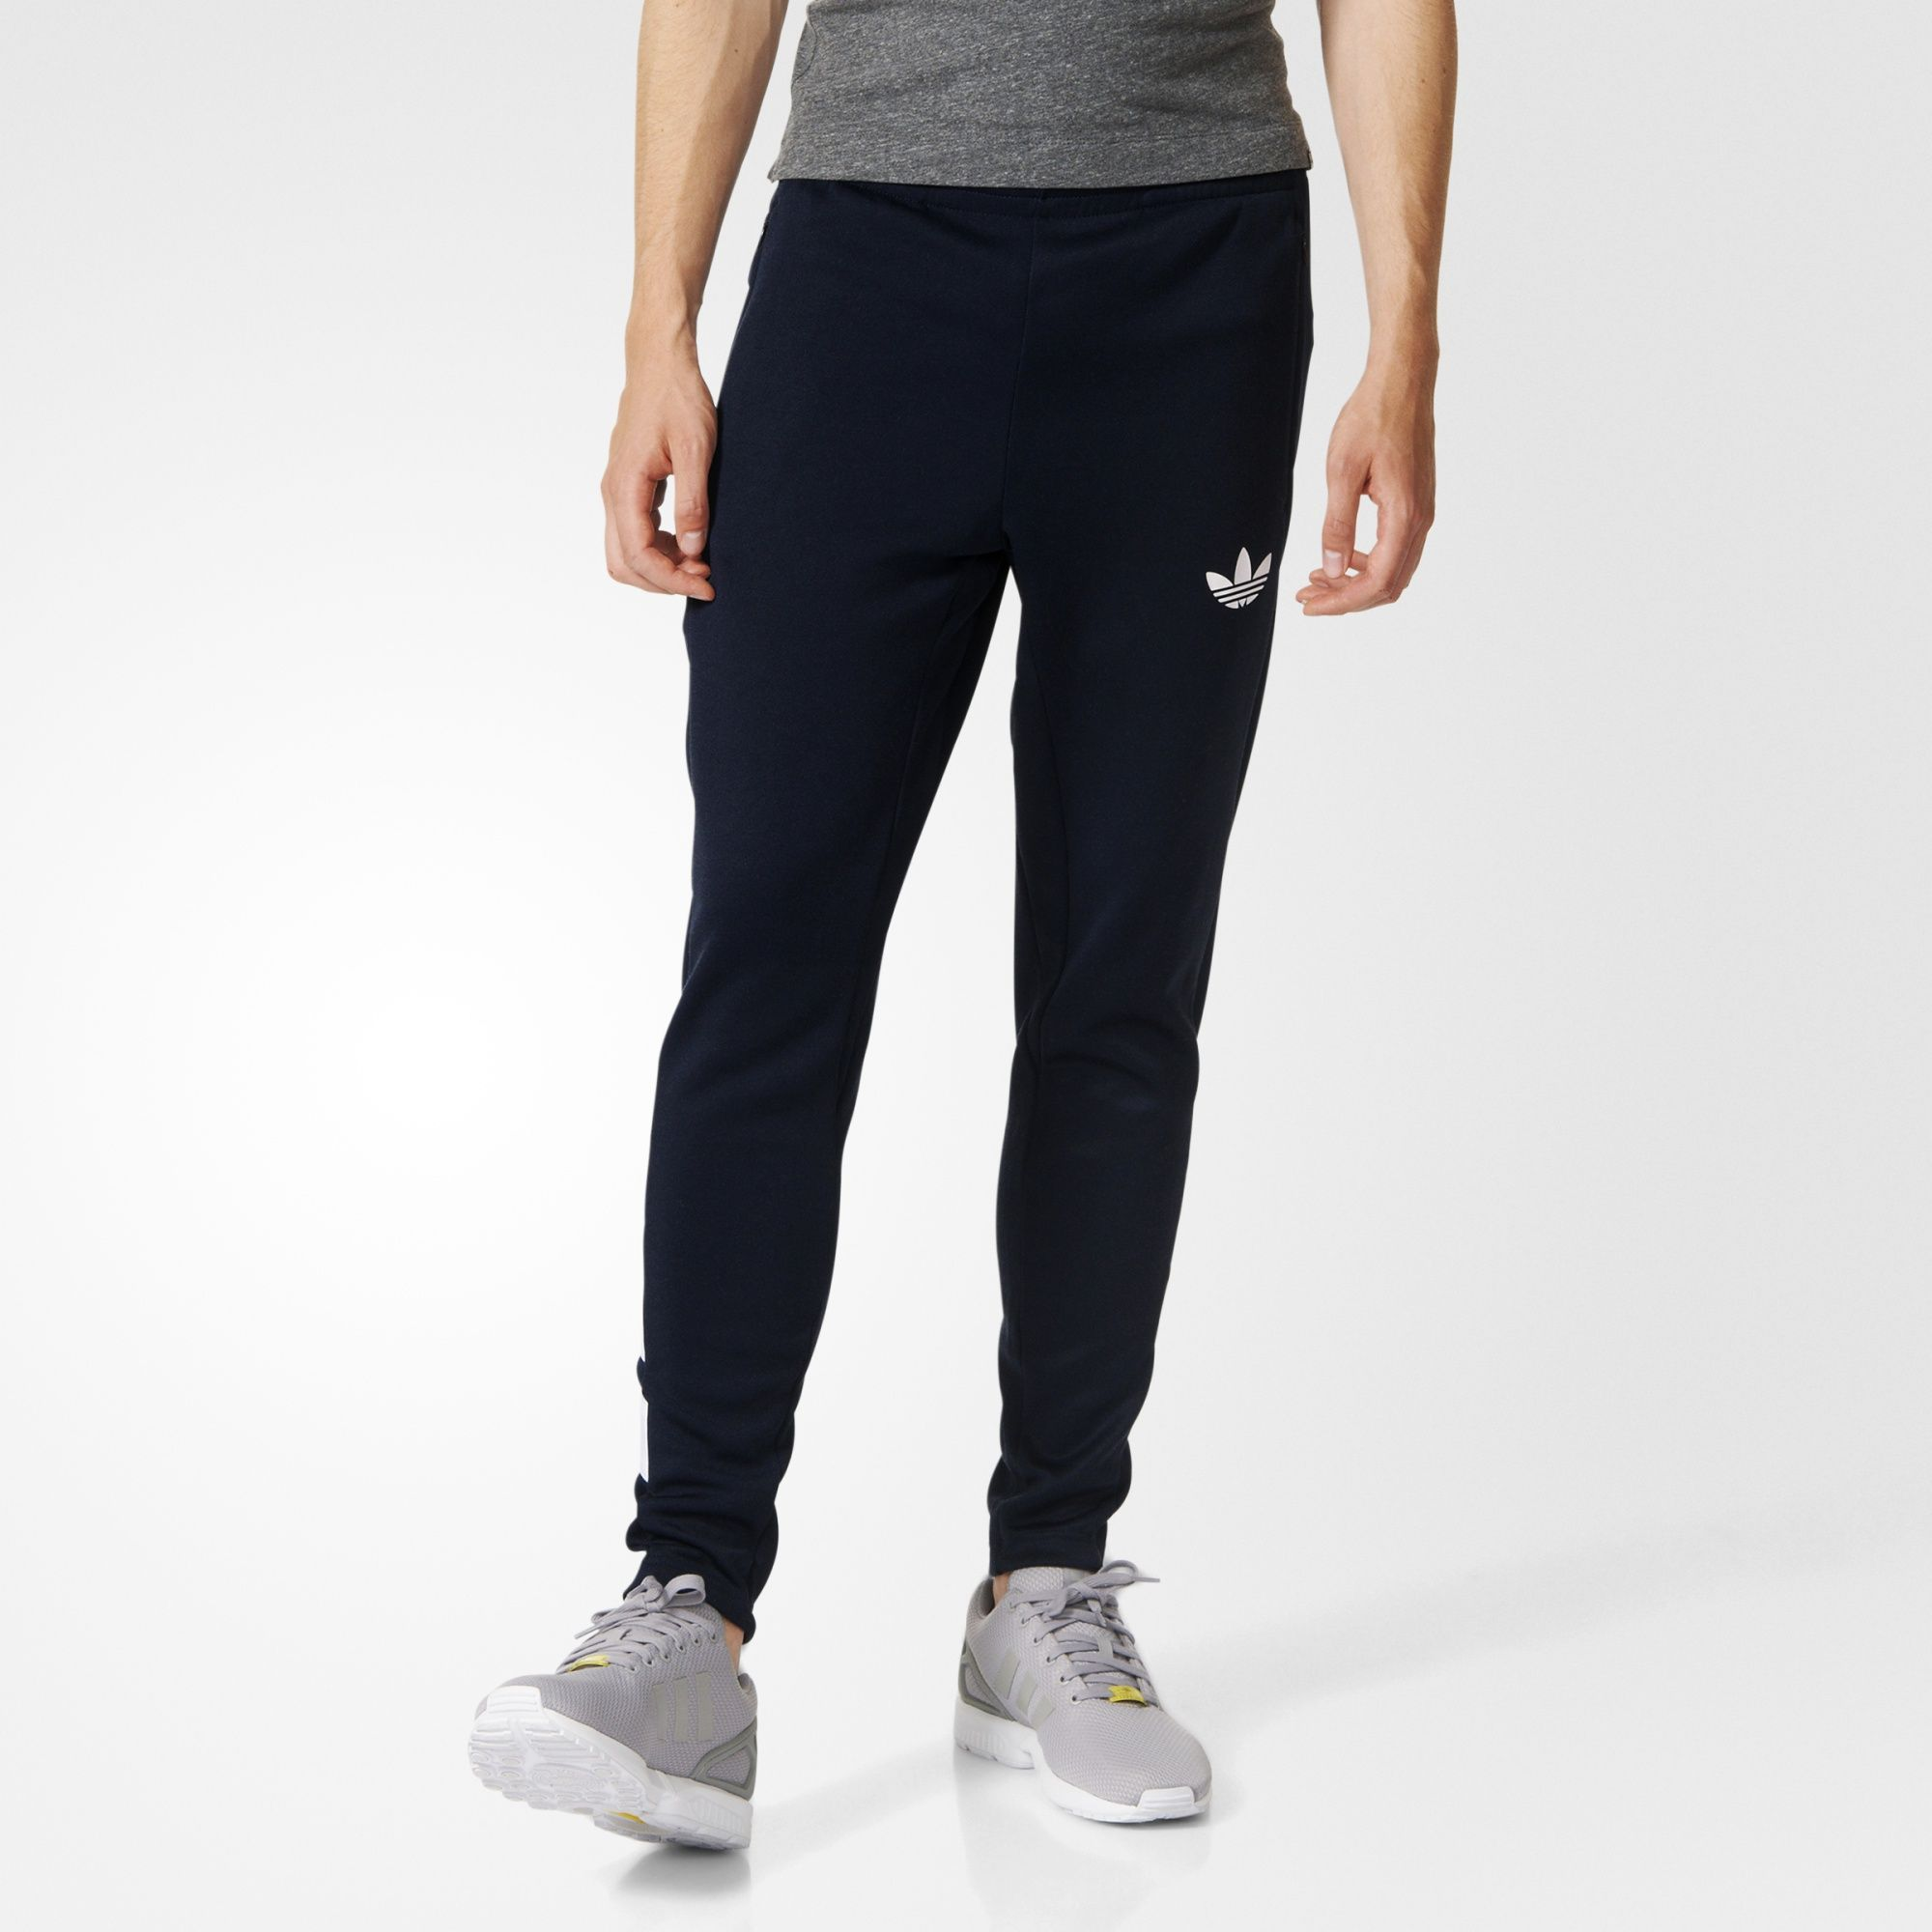 Adidas · Put on some football club-inspired style. These men's track pants  ...